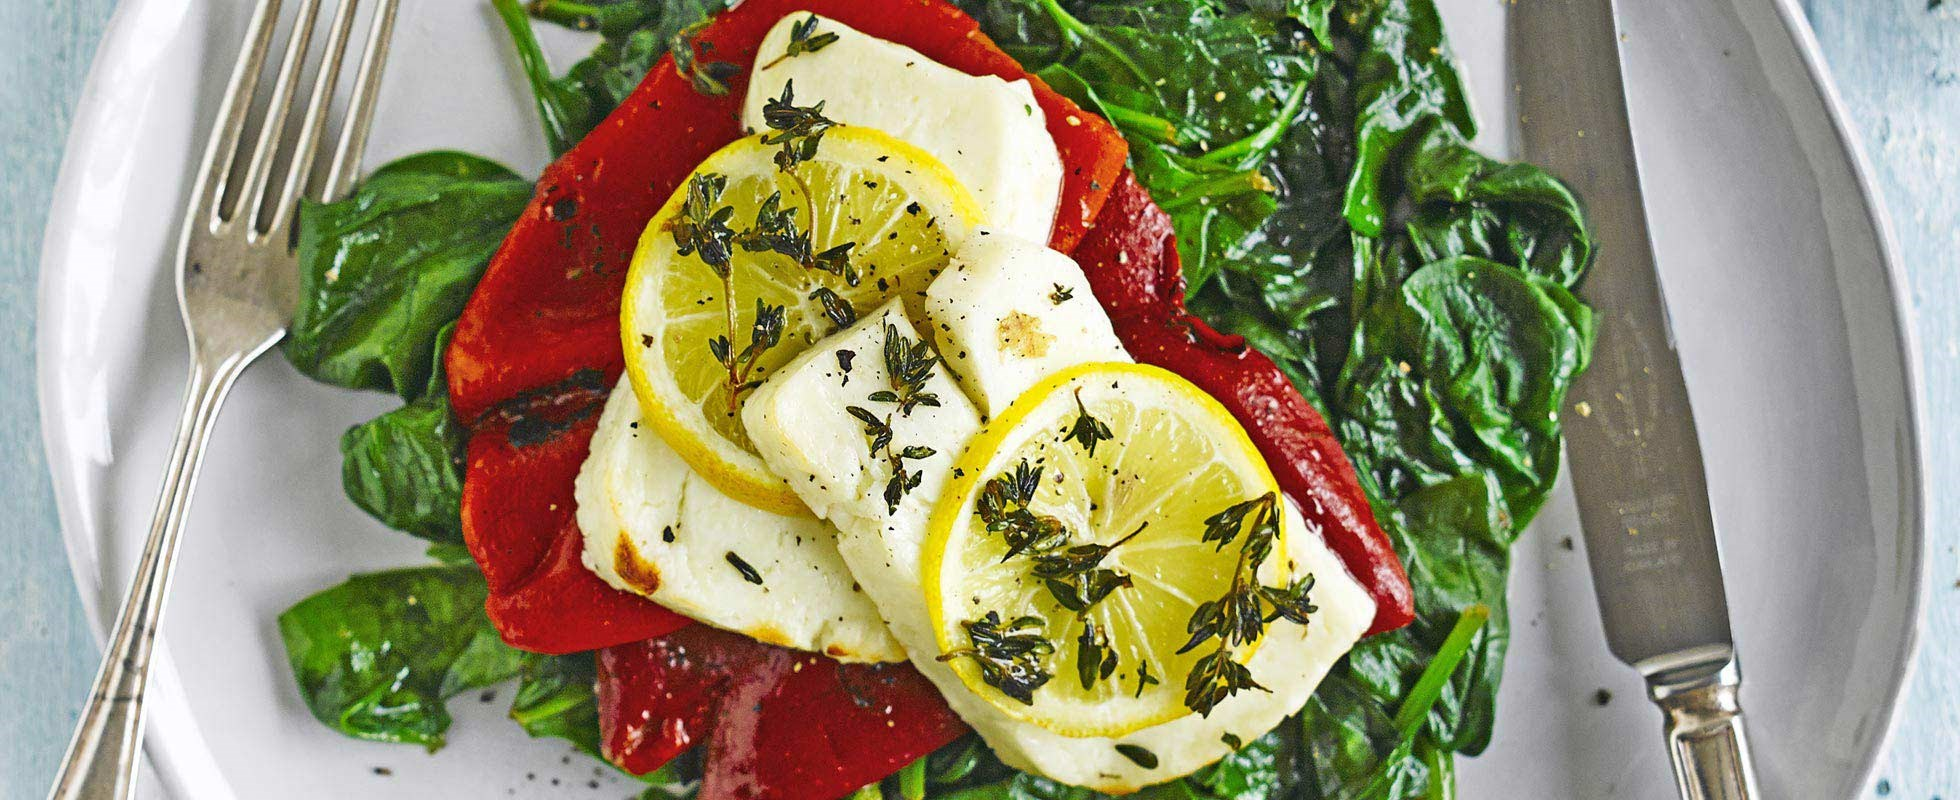 Thyme-baked halloumi with peppers